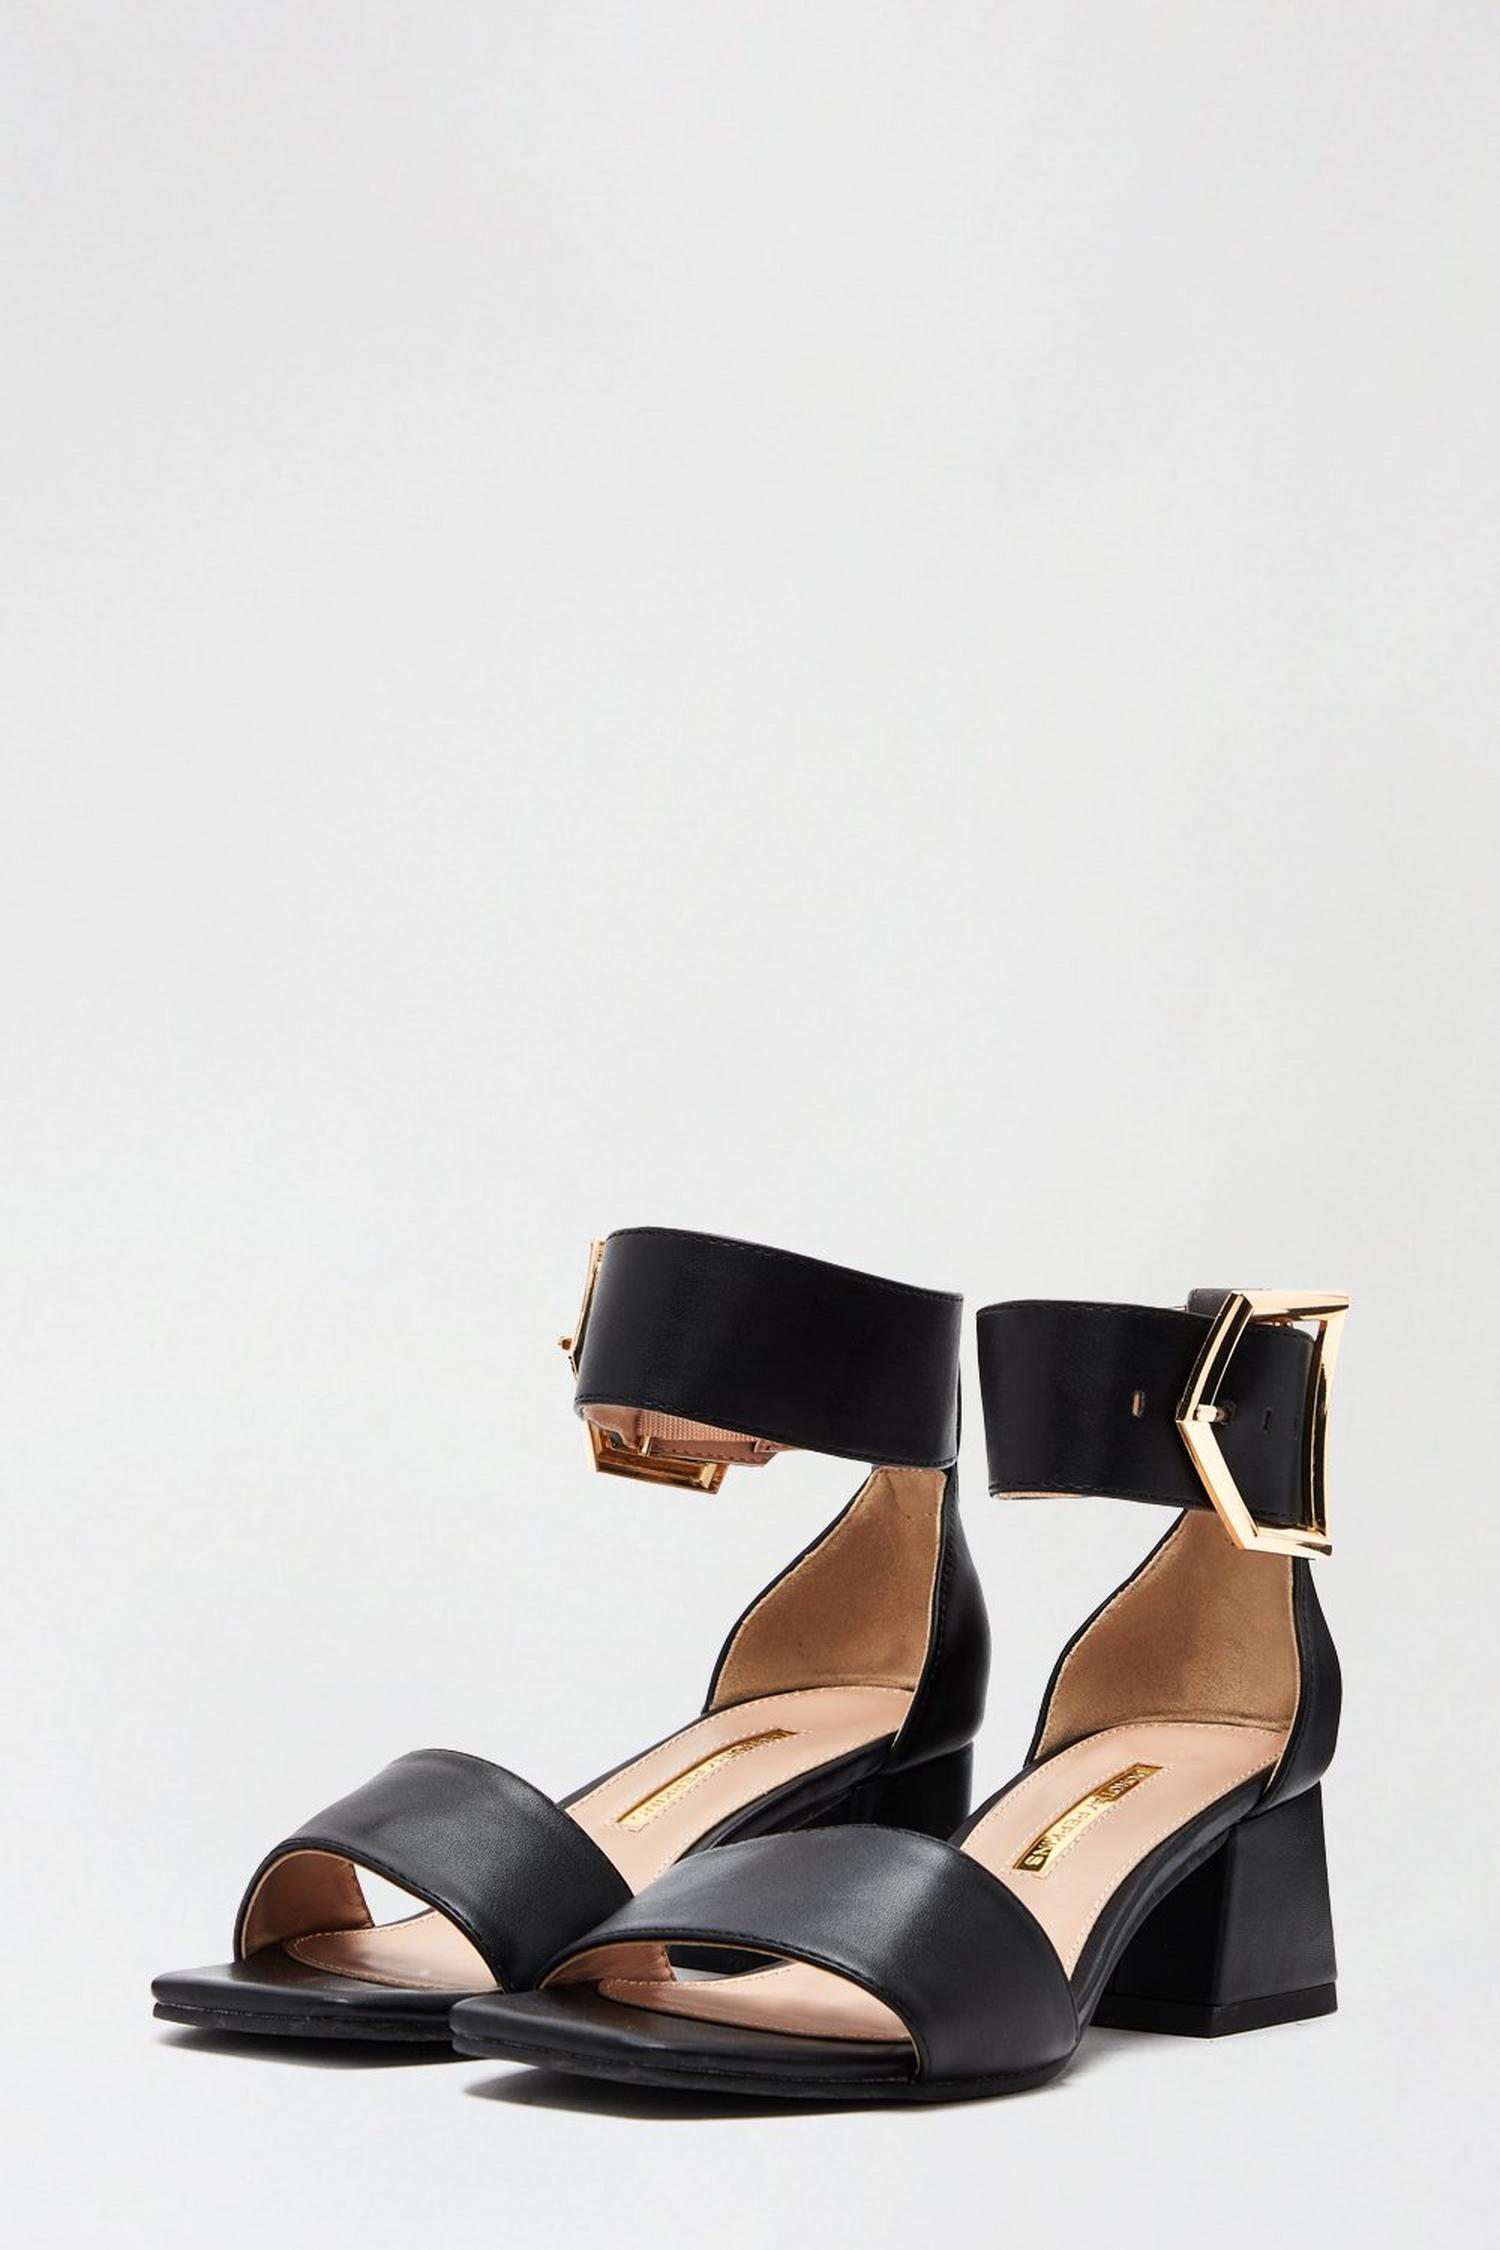 105 Black Saga Heeled Sandal image number 2